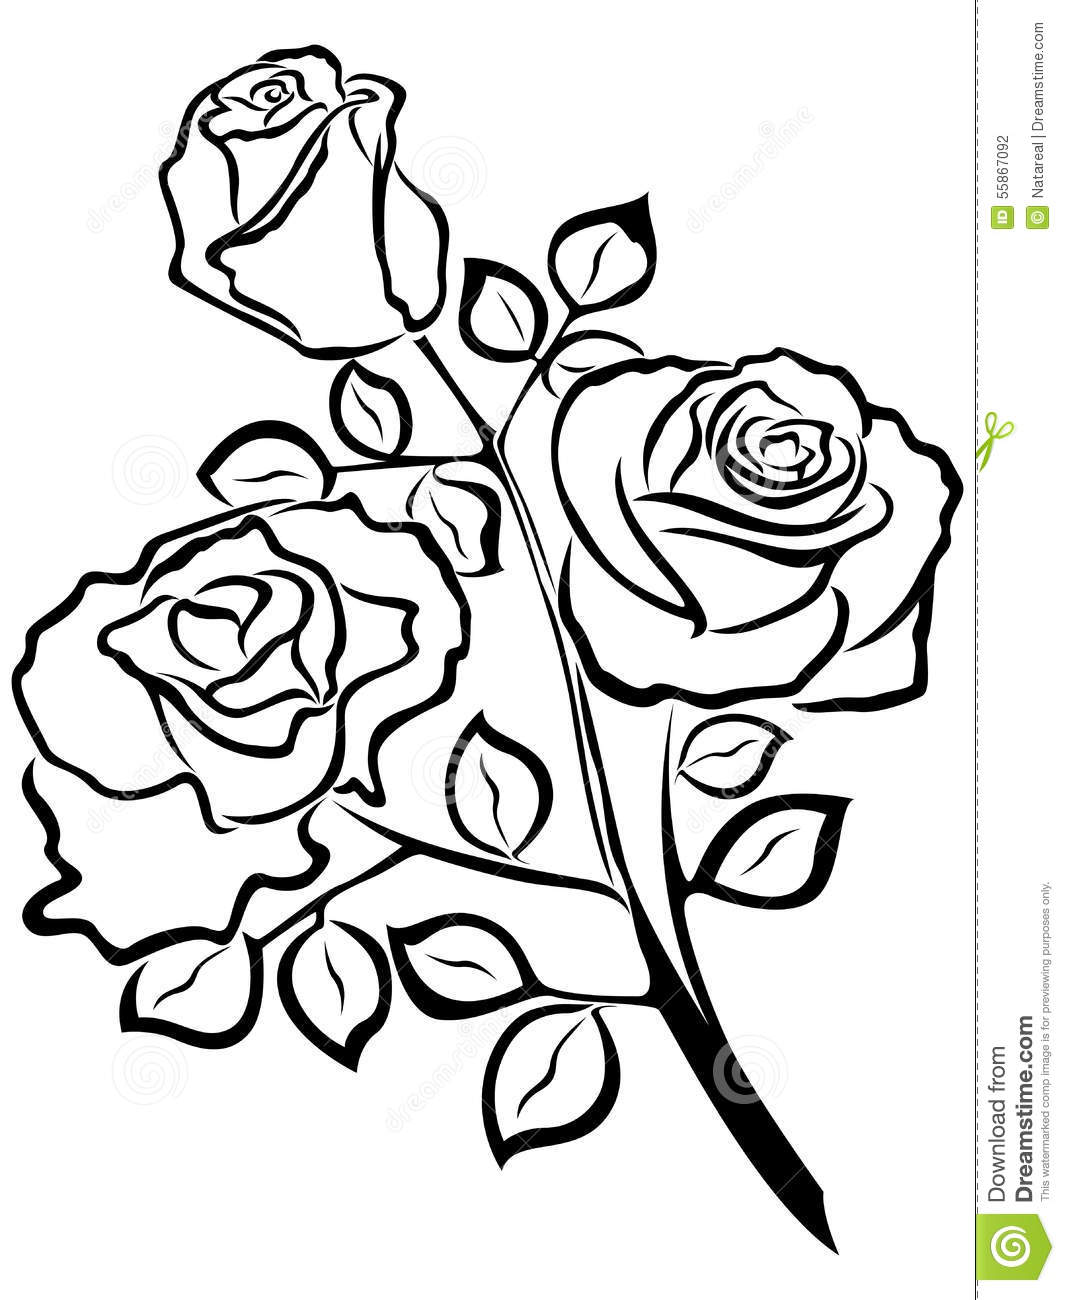 Black Outline Of Rose Flowers Stock Vector Image 55867092